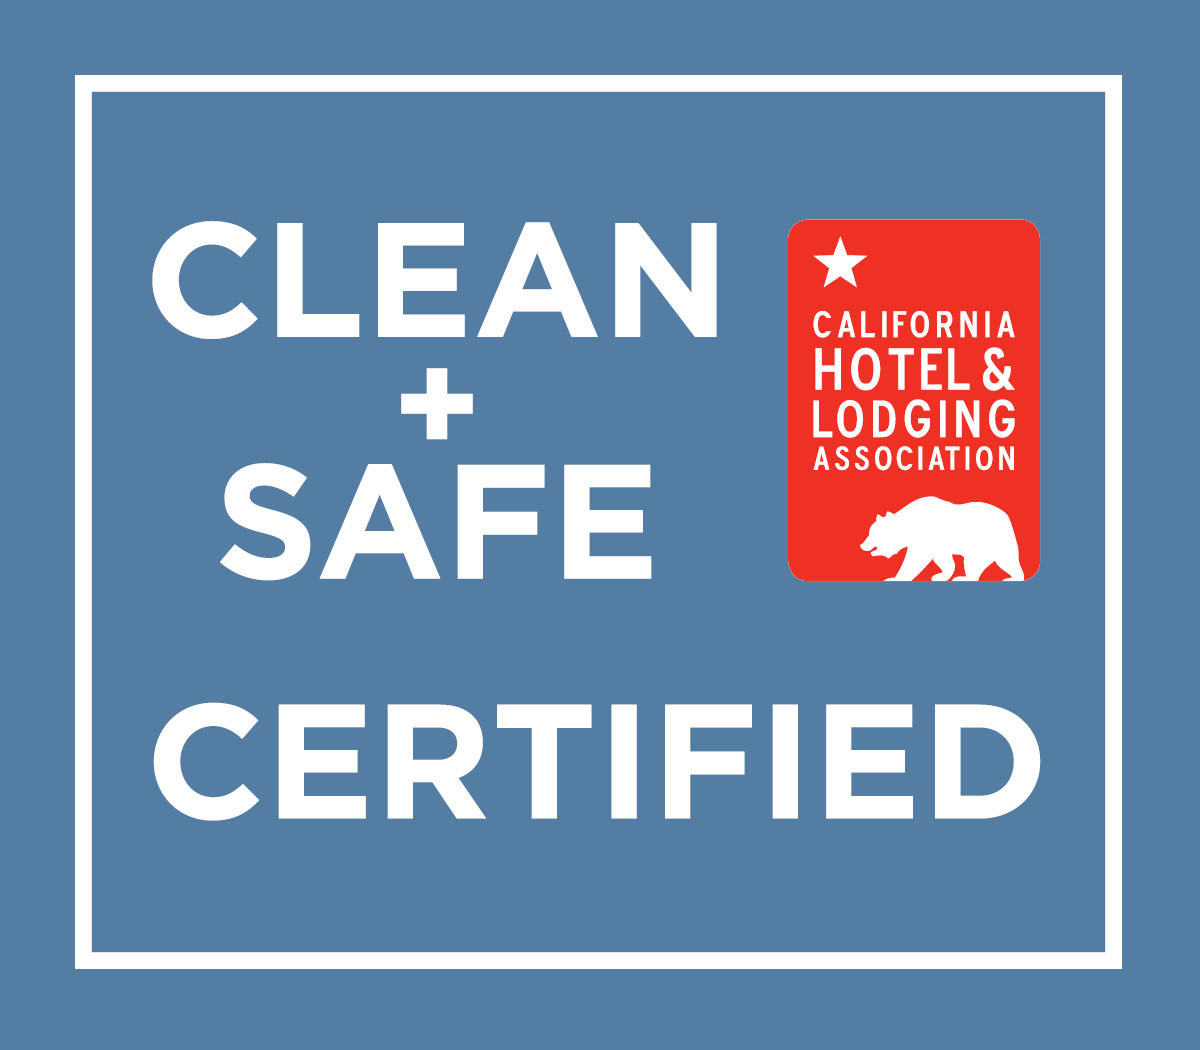 chla cleansafecertified 1200x1050